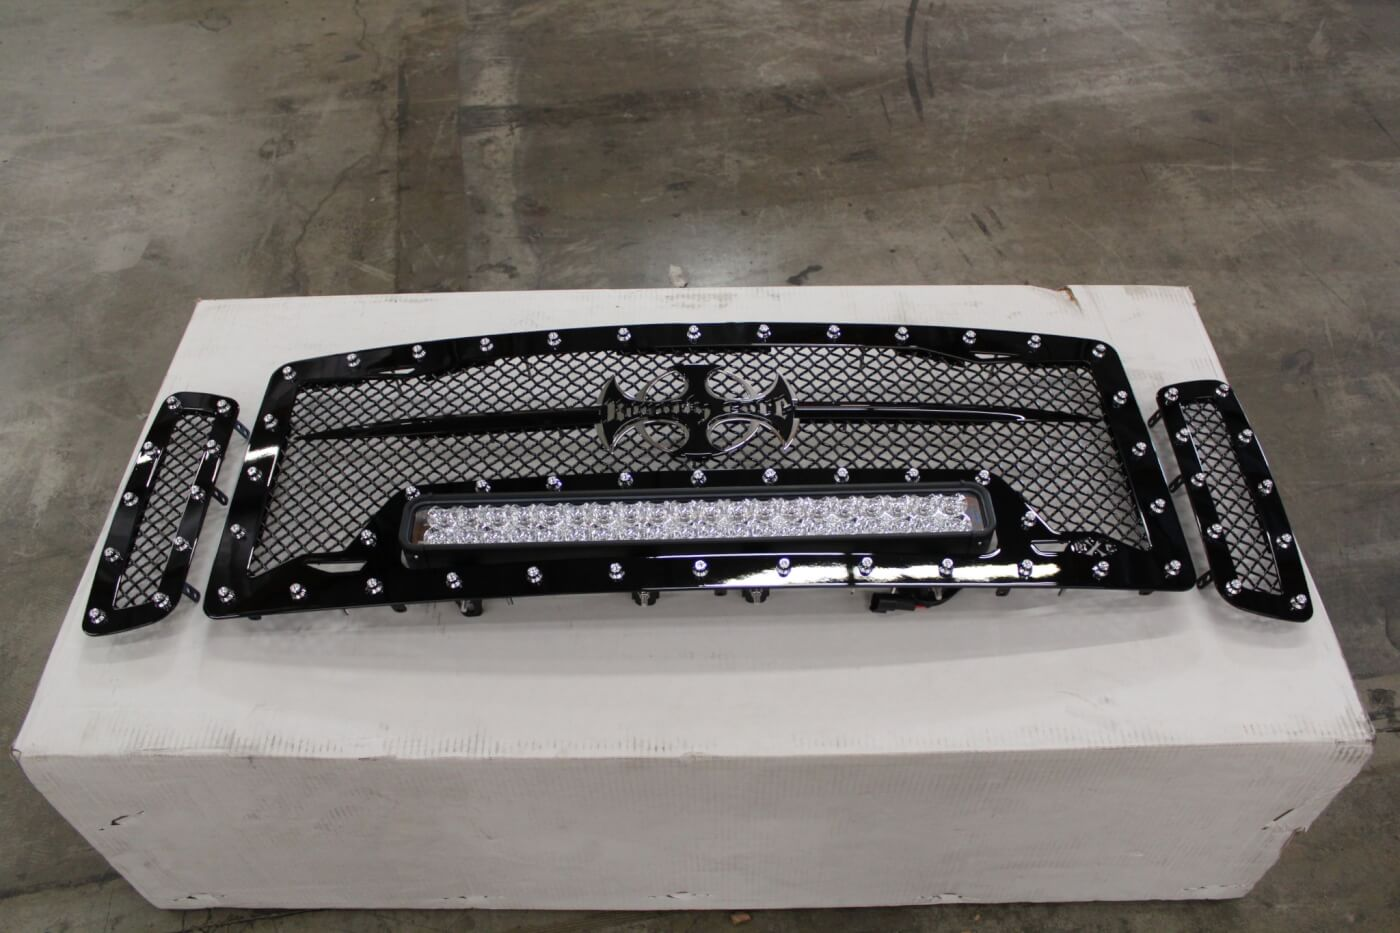 1. We decided to take a two-pronged approach to our truck's new nose. The first was the TrailReady bumper, installation of which was covered in our last issue (Diesel World, December 2014). The second is a Royalty Core RC1X Incredible LED grille. This three-piece insert includes a gloss black mesh grille surround with nickel-plated stud accents around all three pieces. The center portion includes a 22-in. Vision X LED light bar on adjustable mounts with an included wiring kit. The grille feels solid and well constructed, with TIG welding and stainless steel mounting hardware.